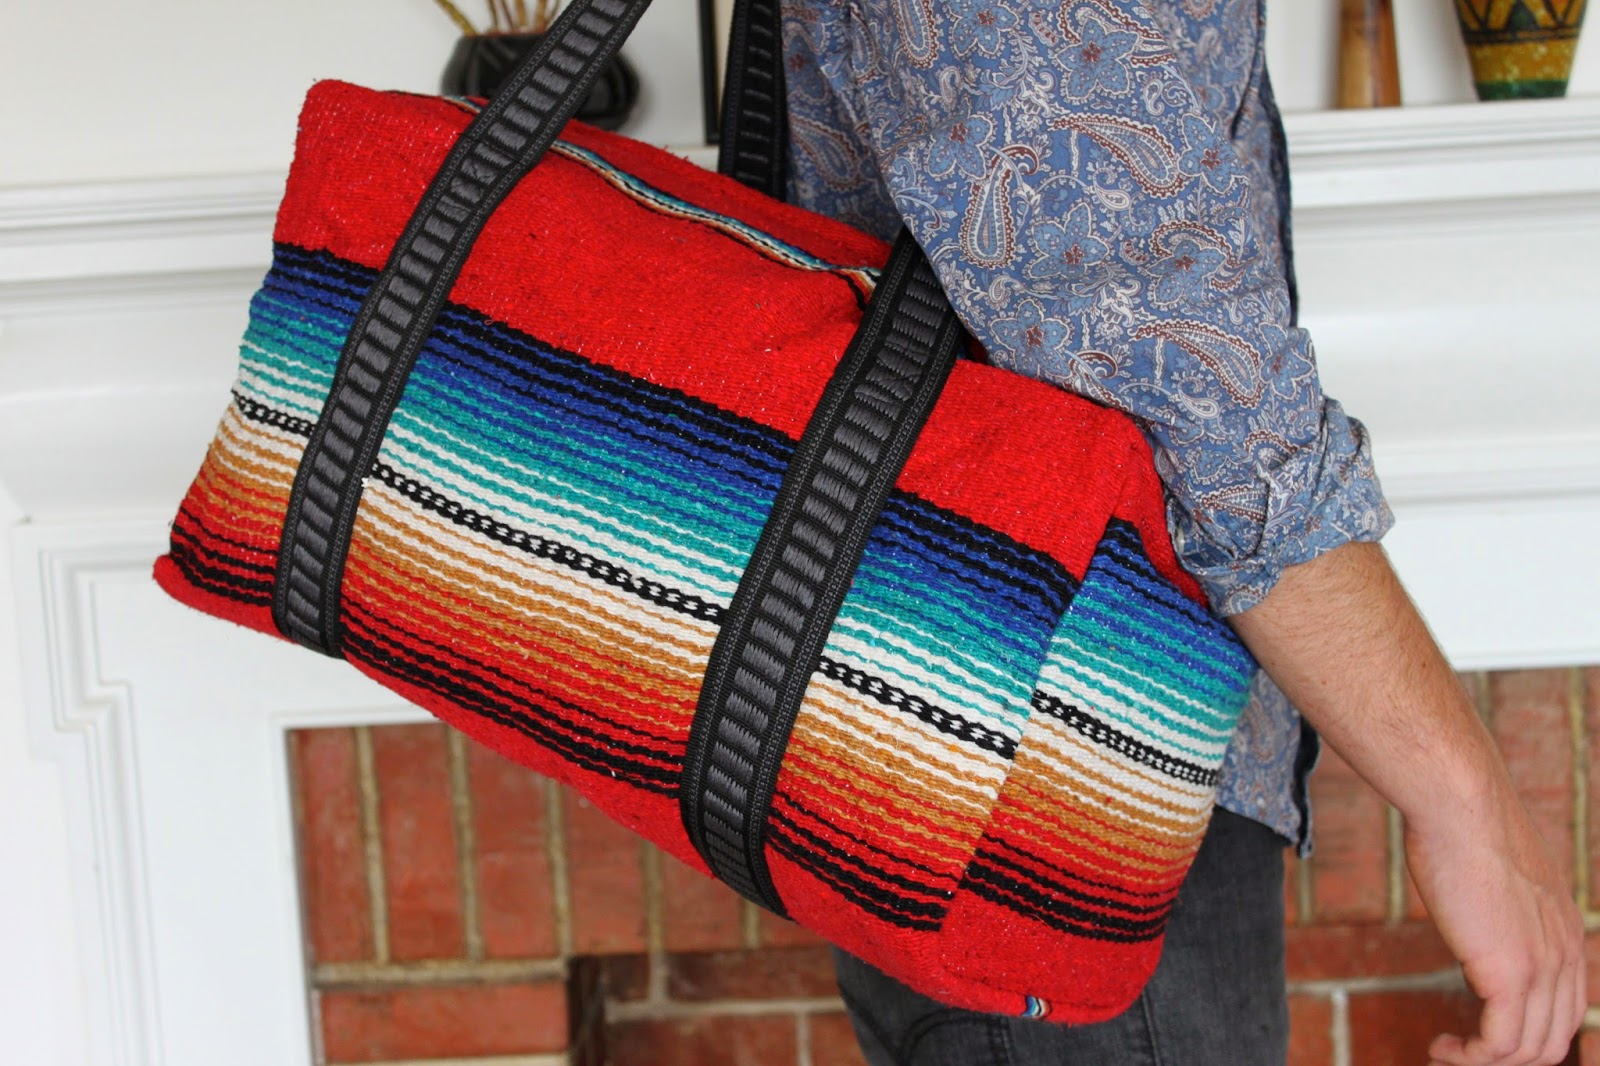 MODERNHAUS: Big Serape Weekender Bags-Southwestern Bags for Travel ...